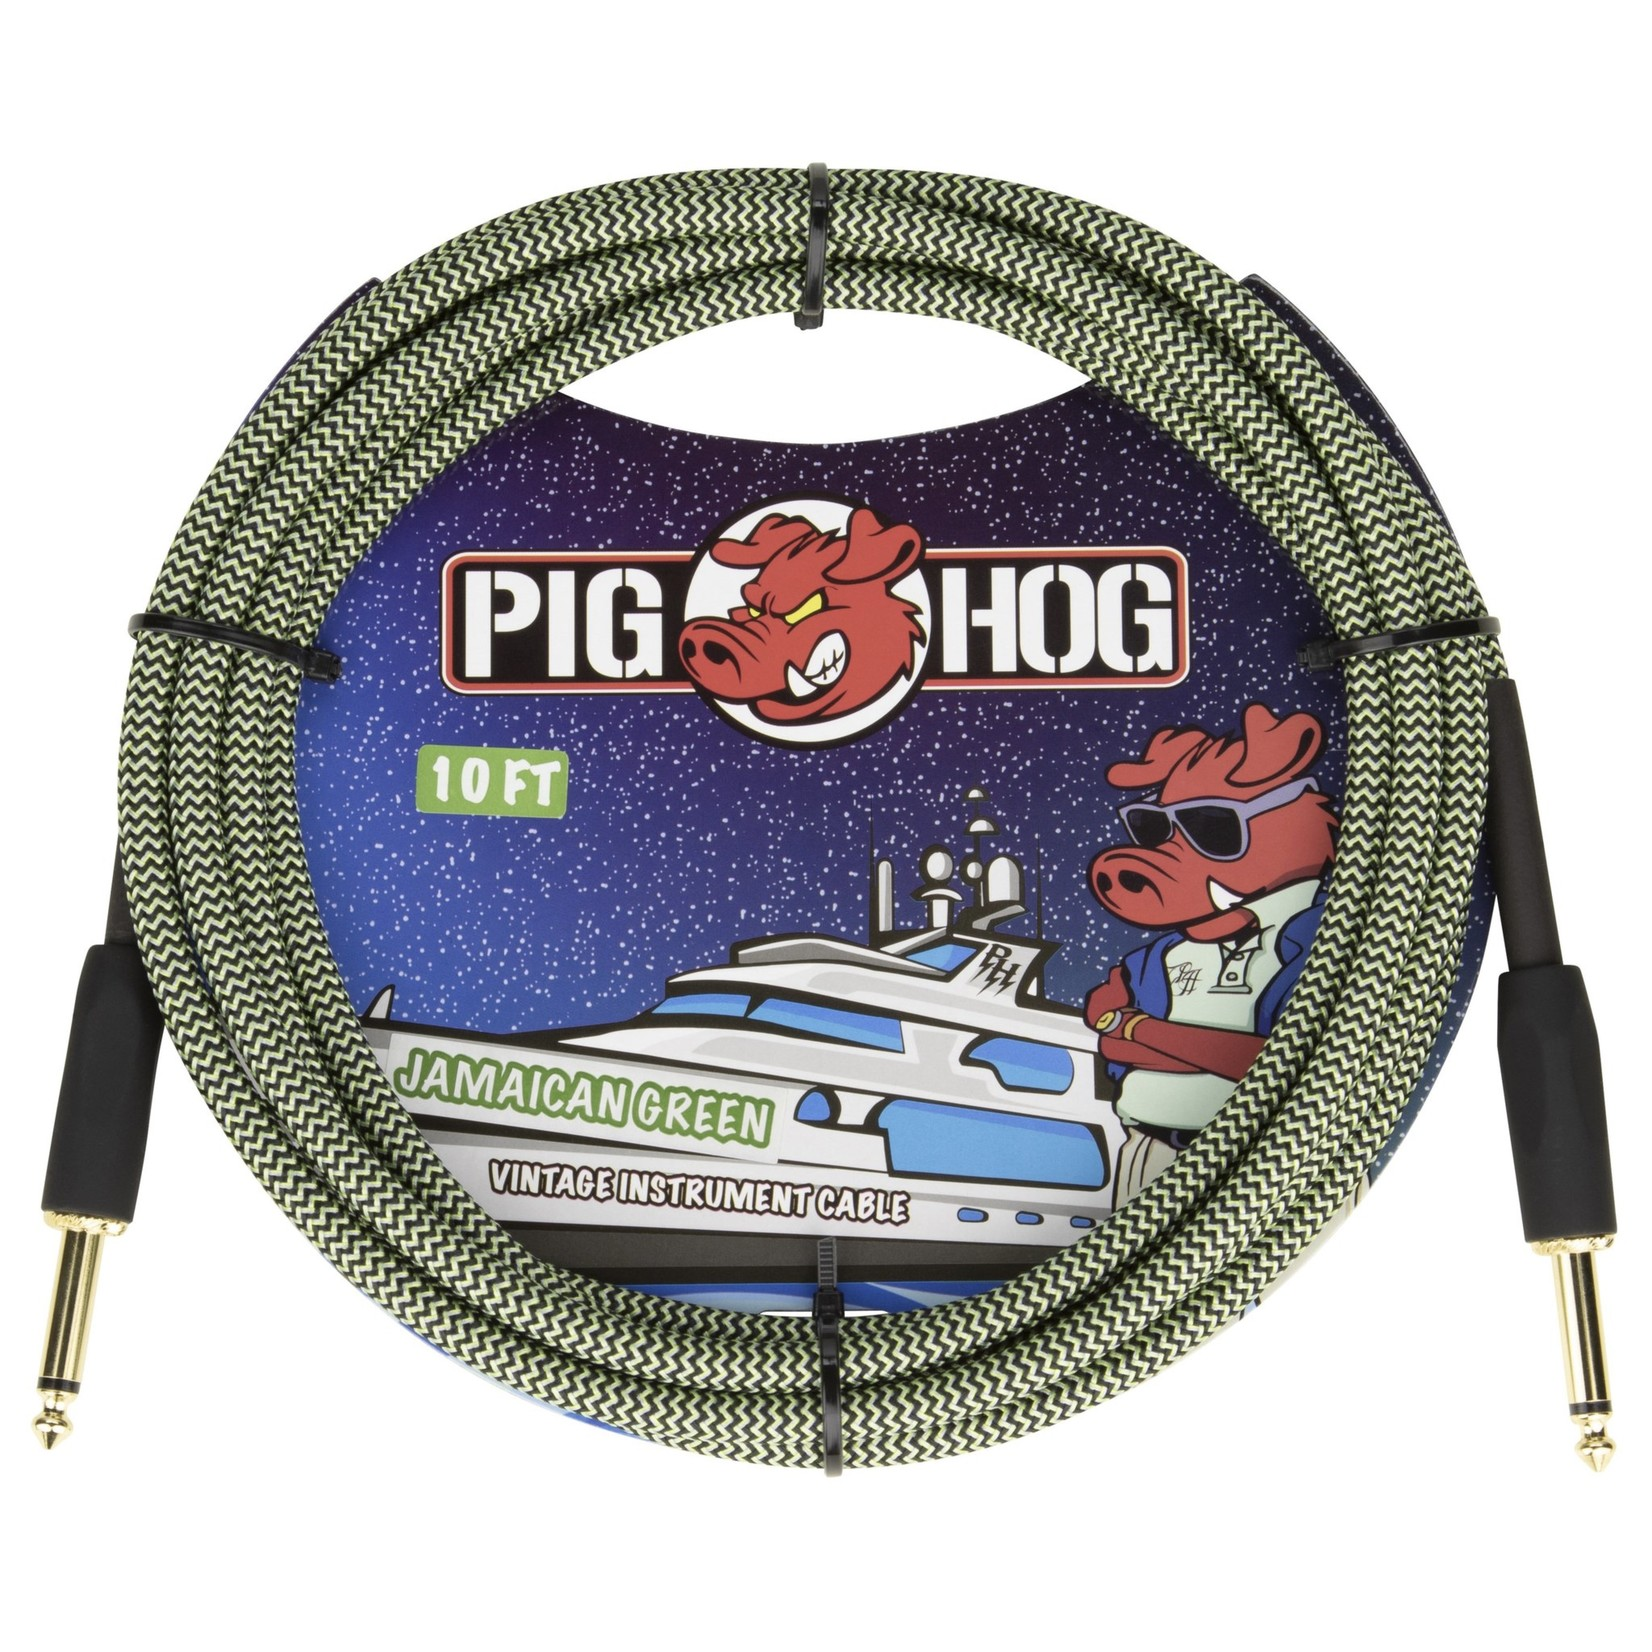 """Pig Hog Pig Hog 10-Foot Vintage Woven Instrument Cable, 1/4"""" Straight-Straight, Jamaican Green - New 2020!"""